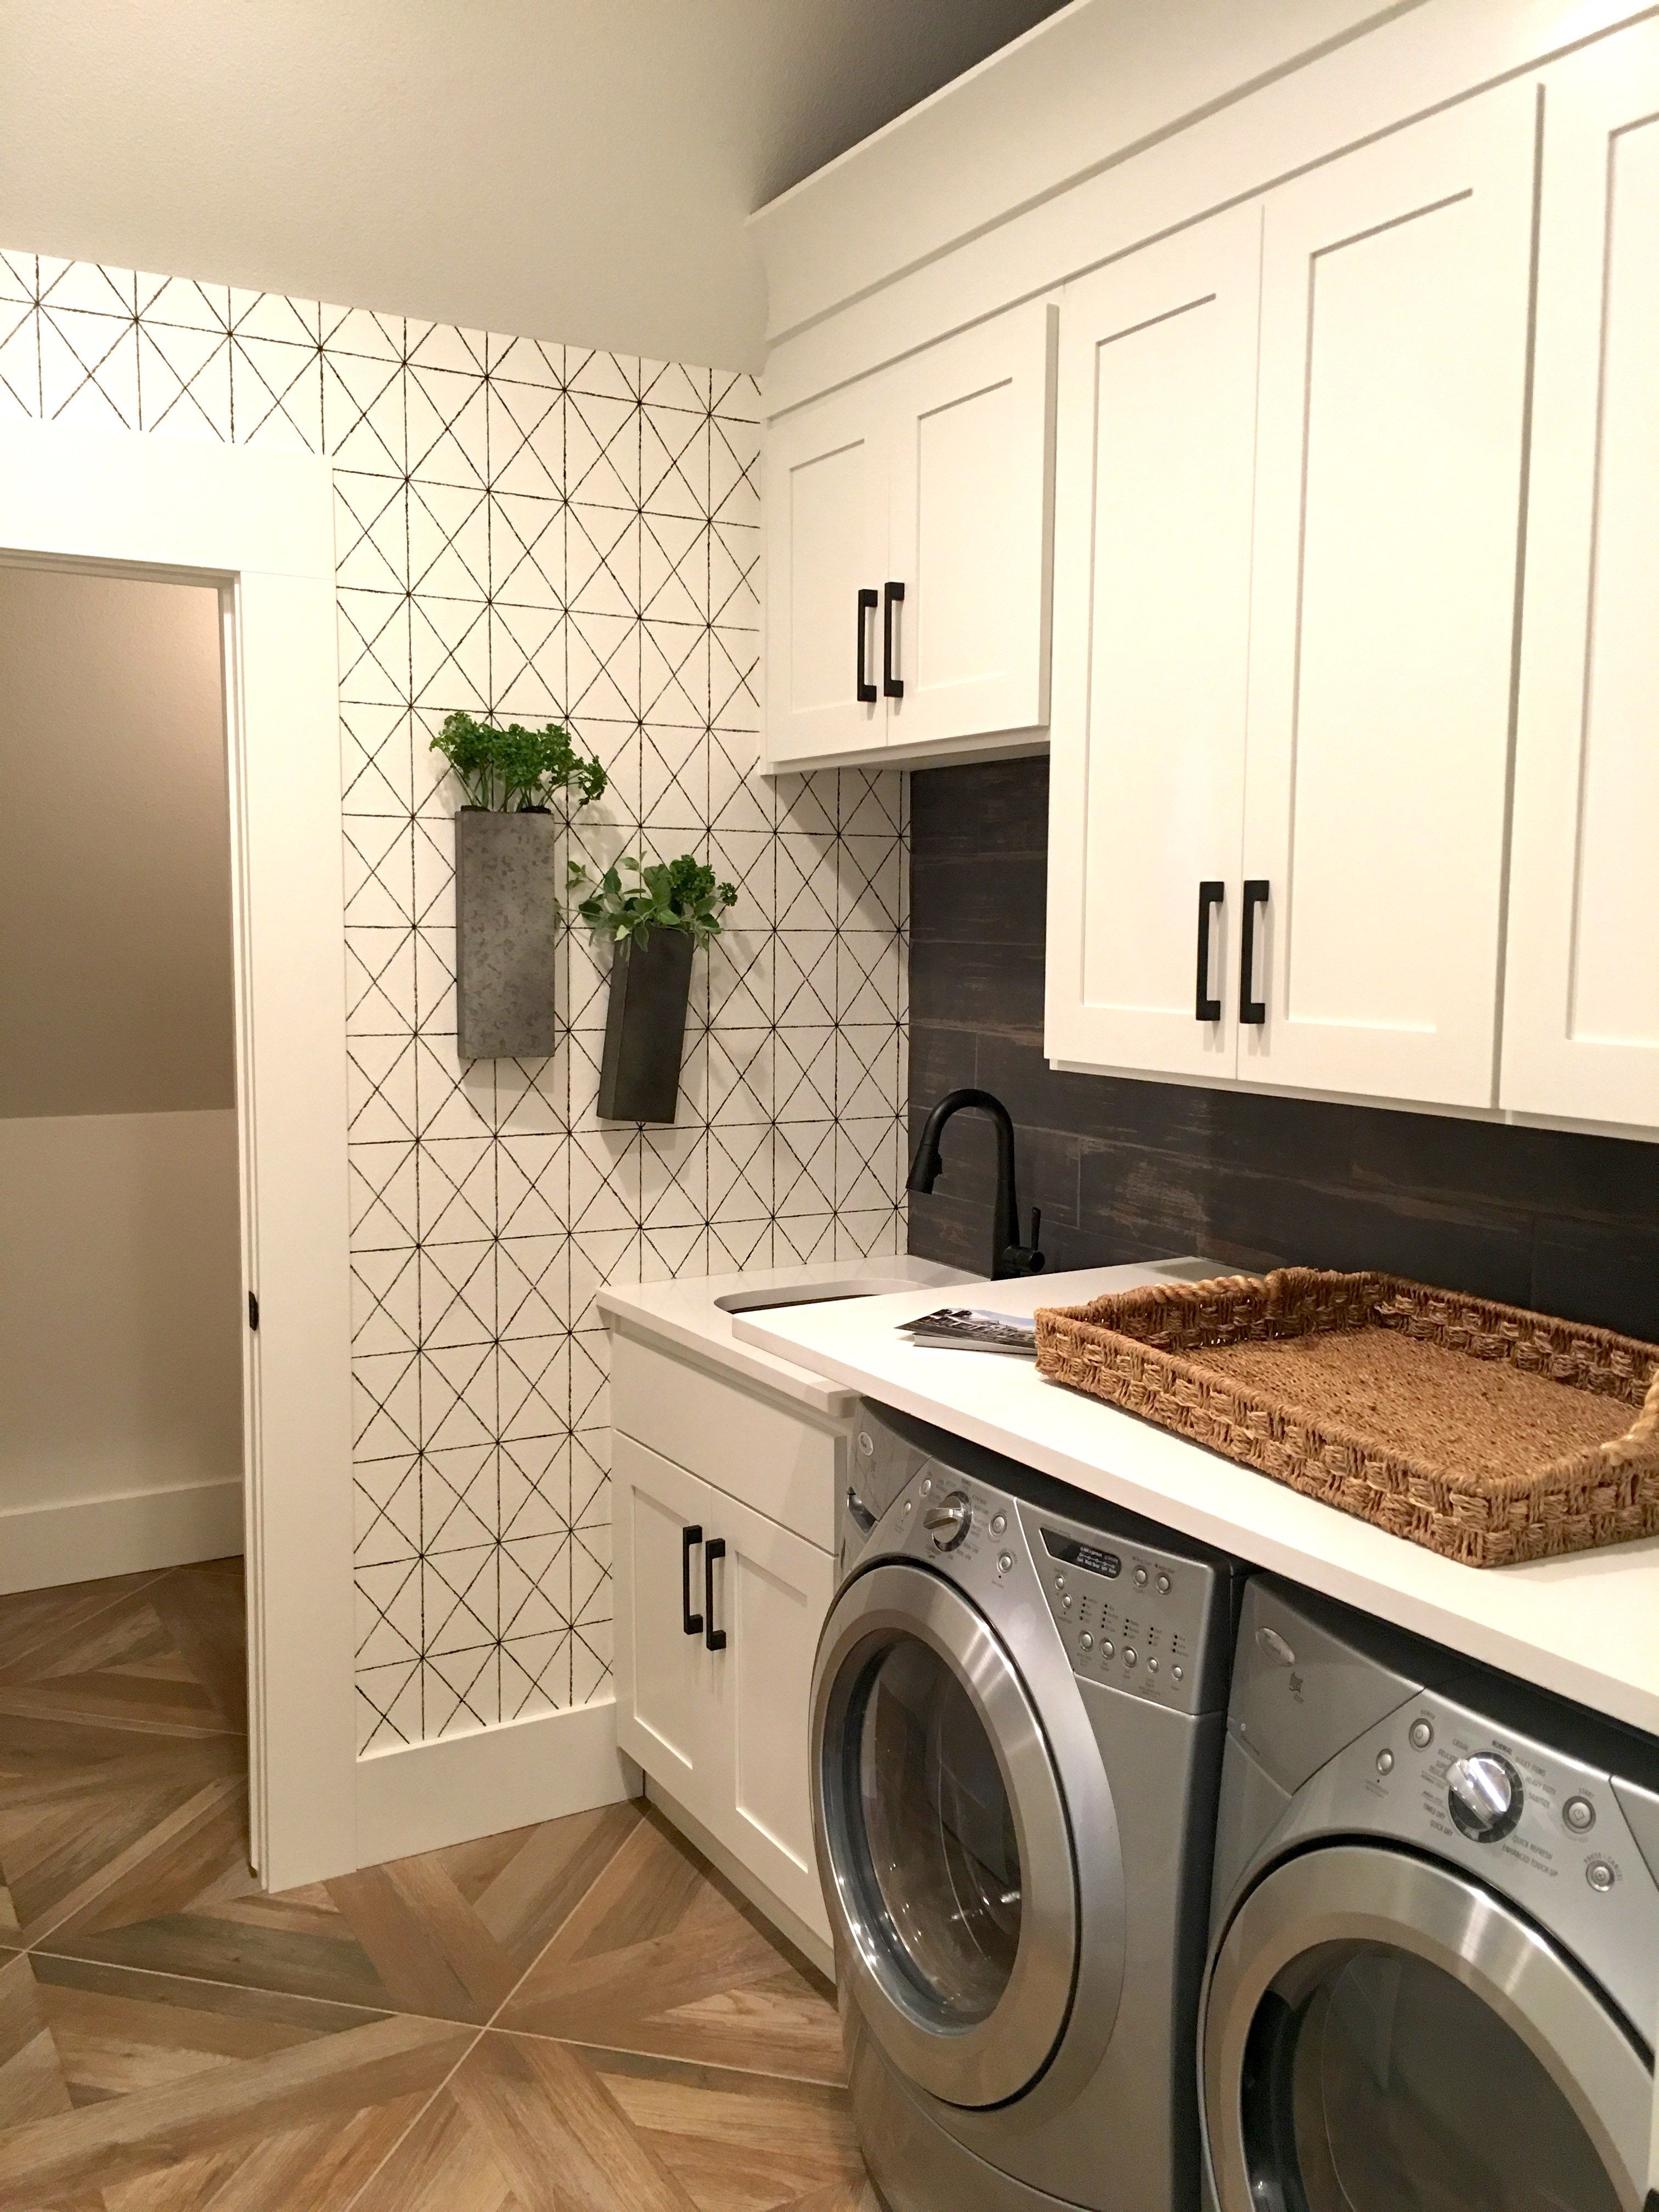 2017 design trends and tips wash day laundry room wallpaper laundry room wall decor. Black Bedroom Furniture Sets. Home Design Ideas